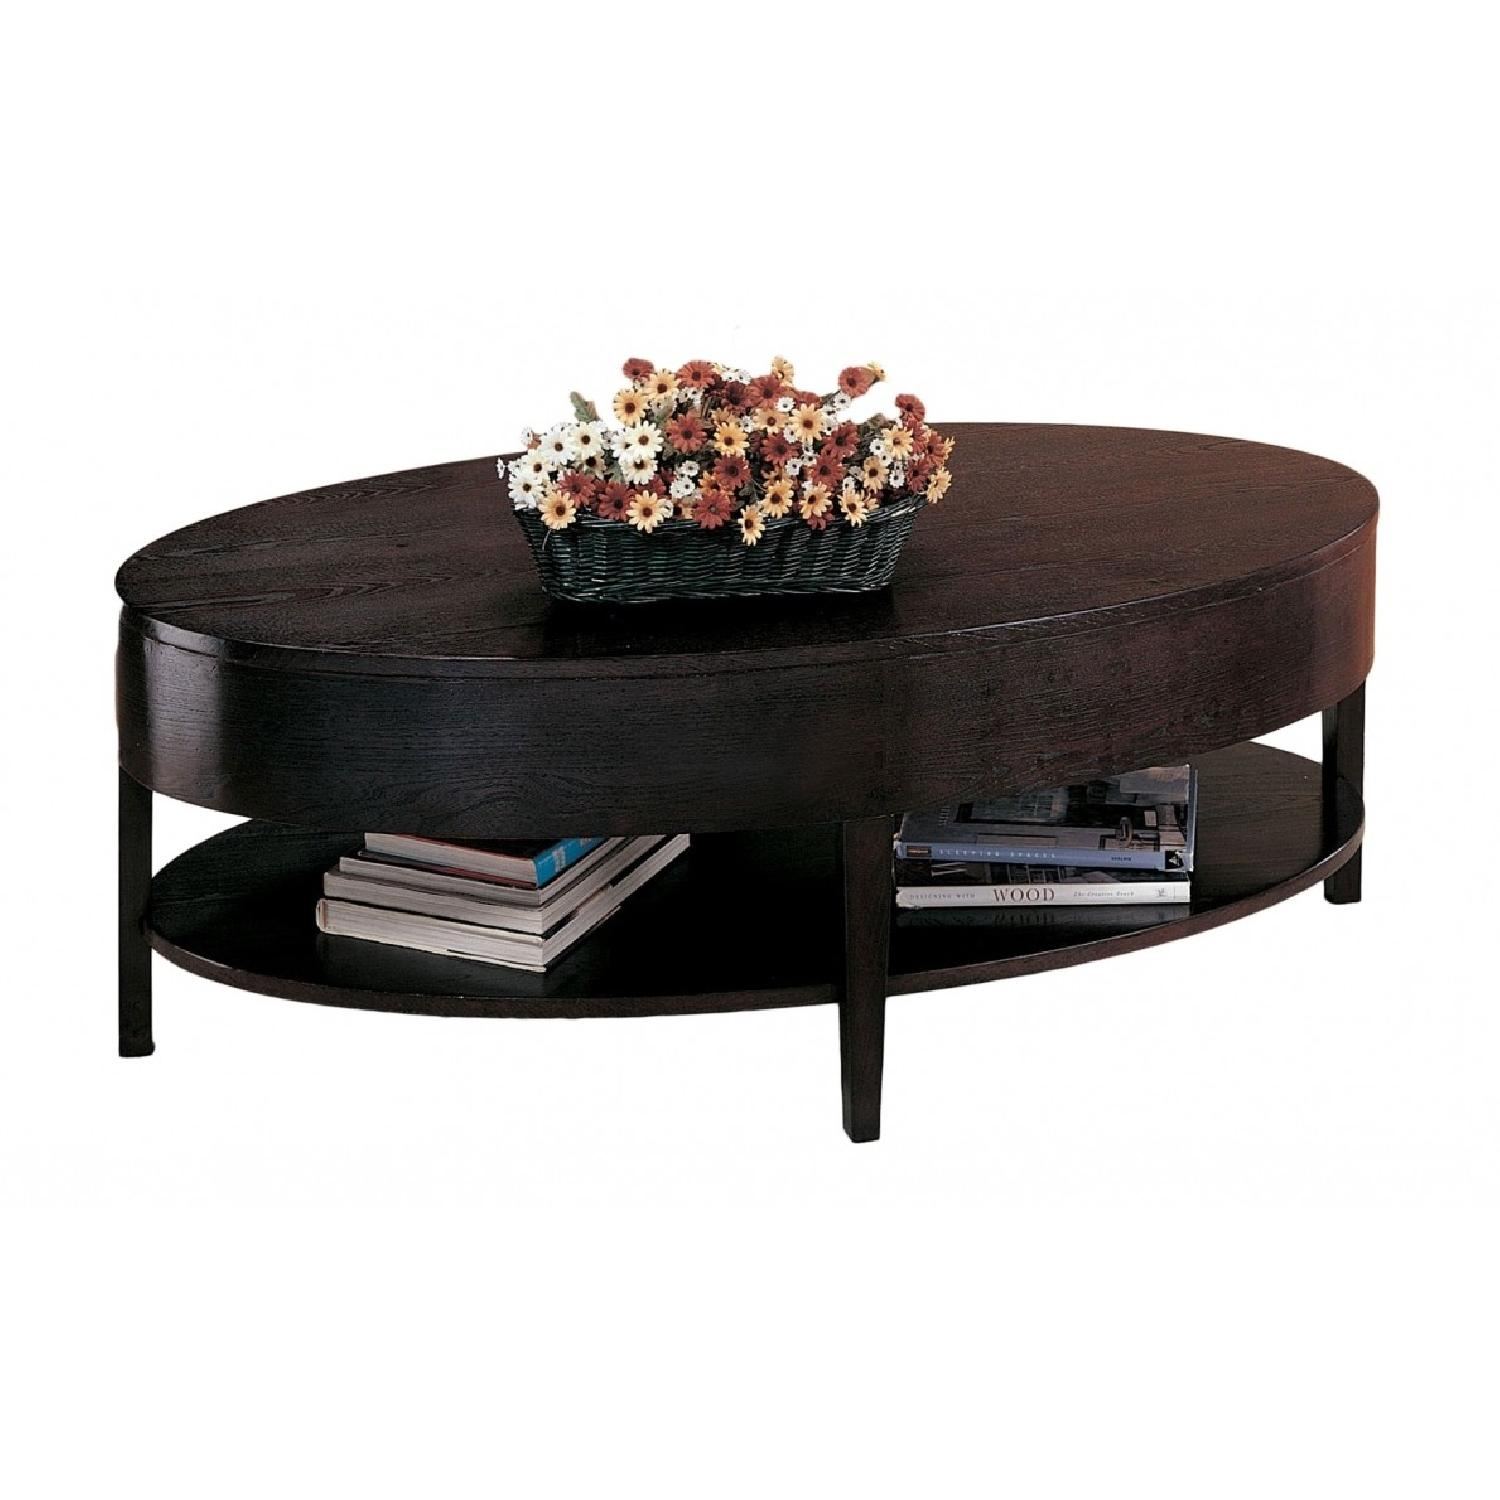 Oval 2-Deck Coffee Table in Espresso Finish